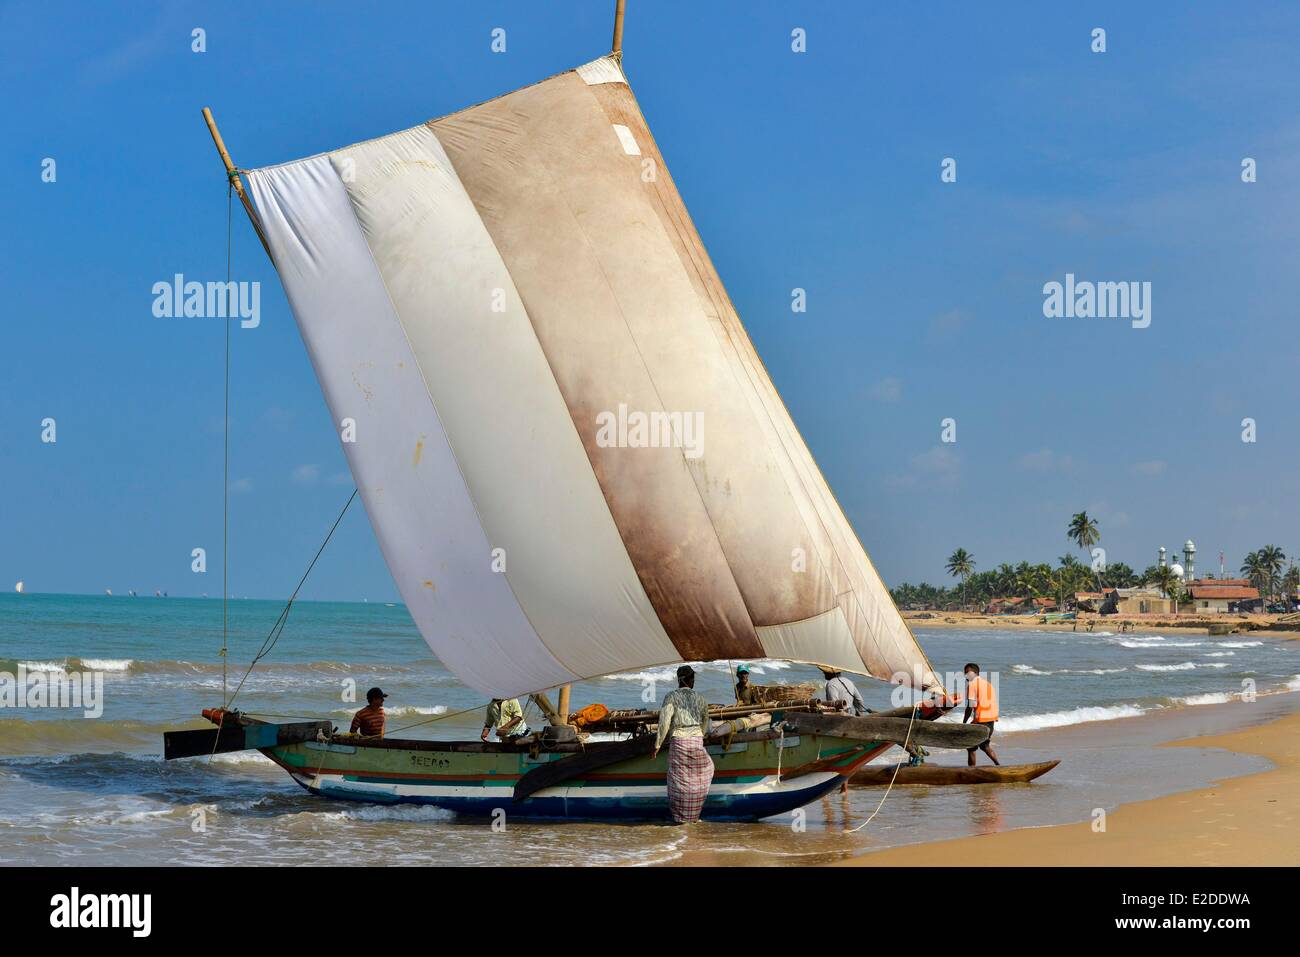 Sri Lanka Western Province Gampaha District Negombo Sailing catamaran accosting of a fishing boat on a beach - Stock Image